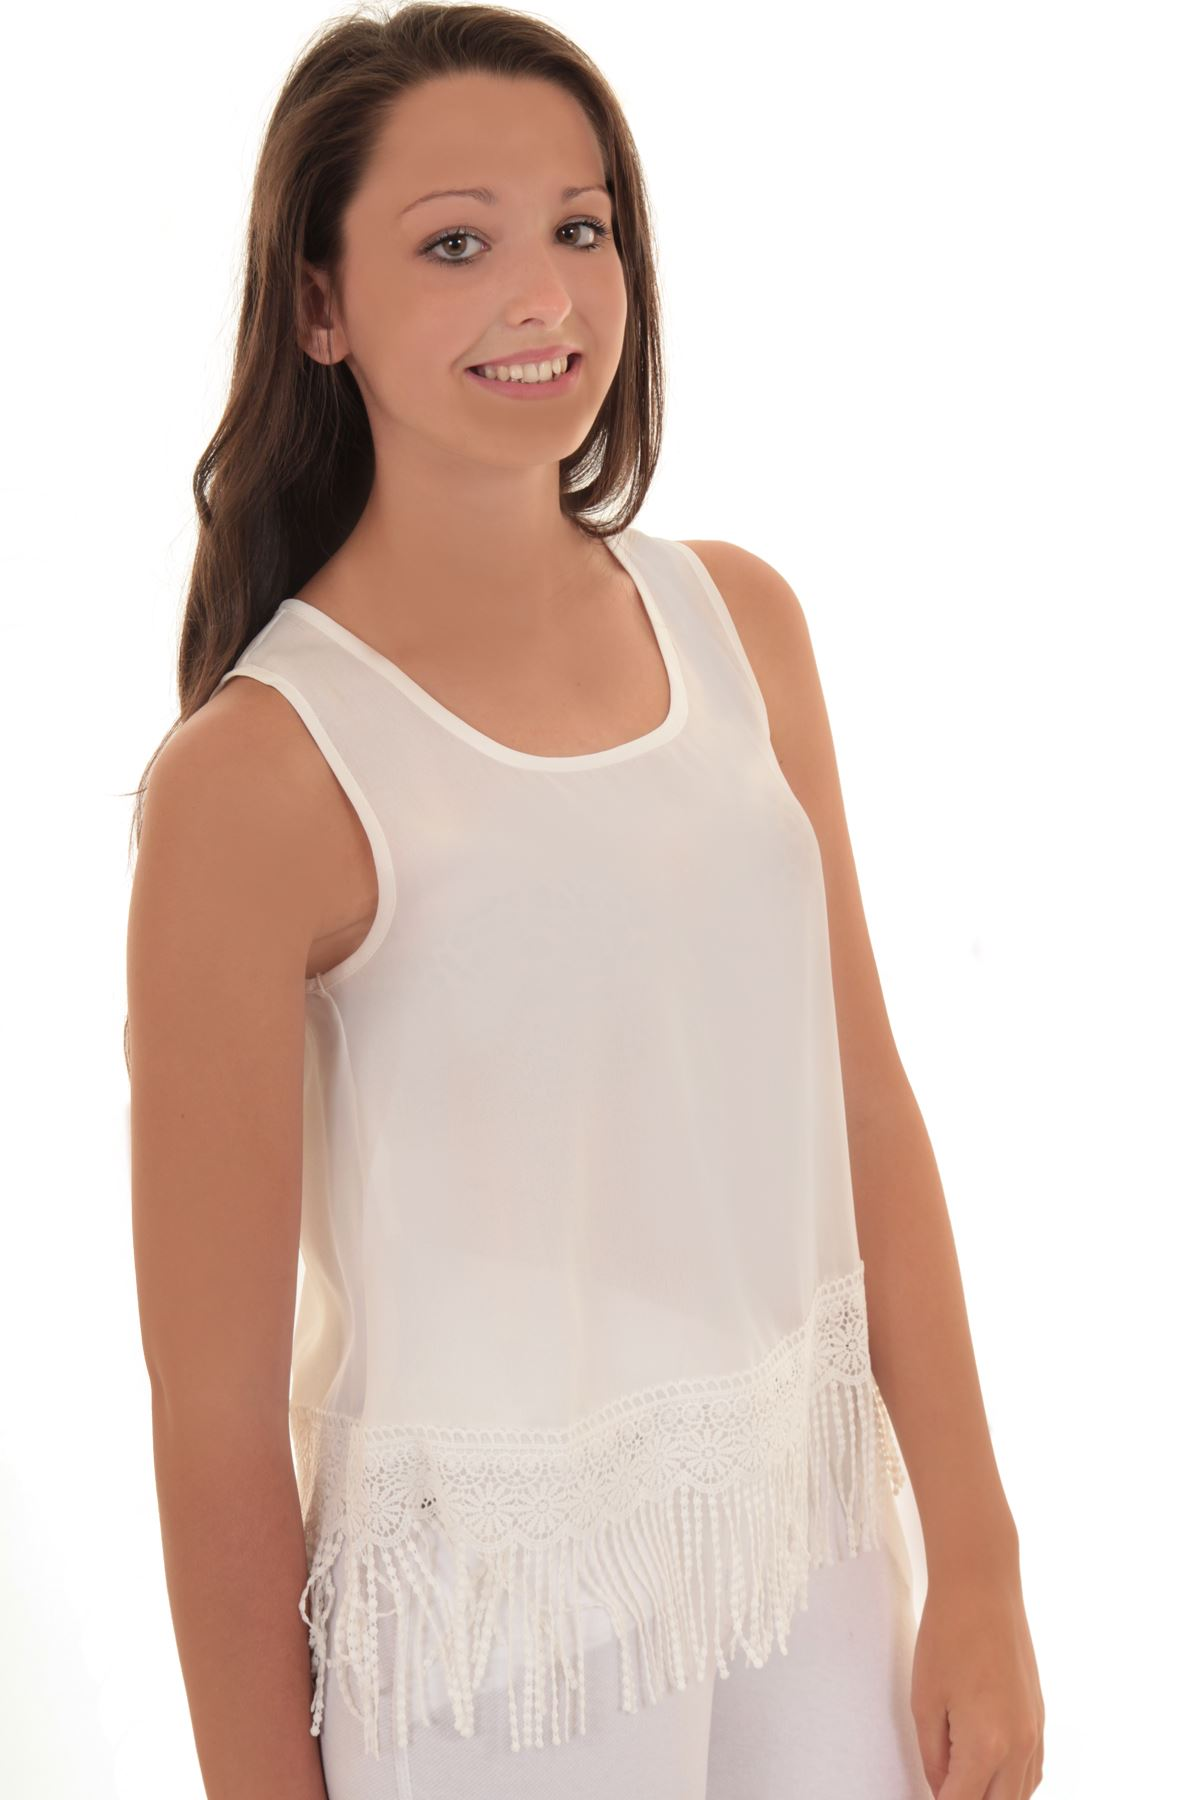 Find great deals on eBay for oversized sheer top xl. Shop with confidence.